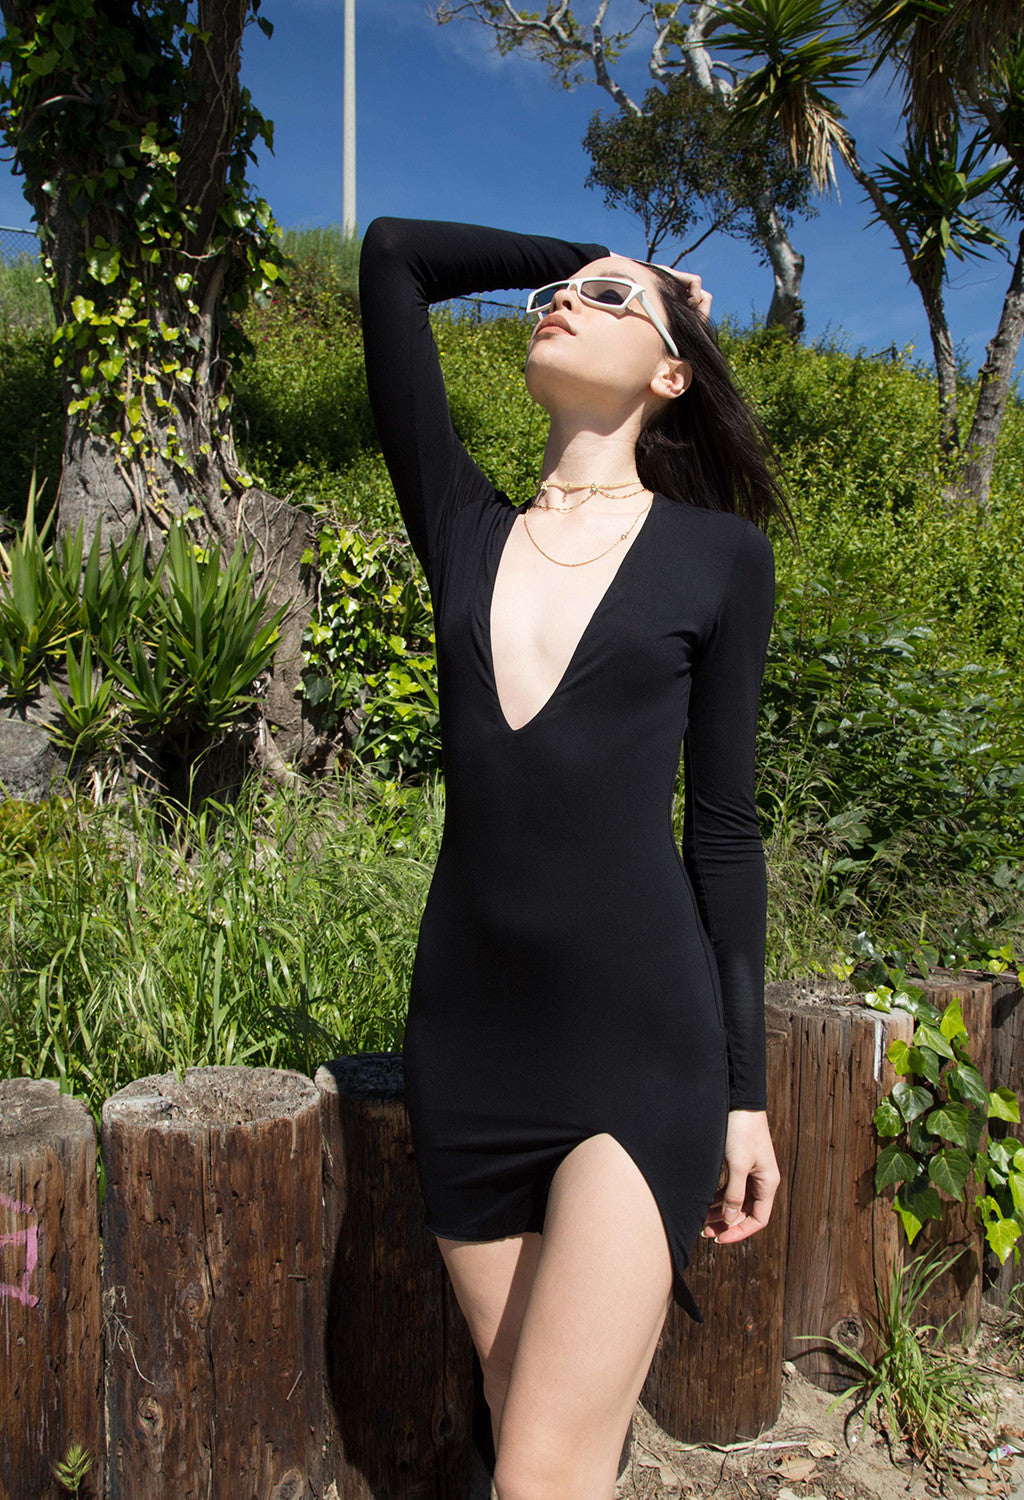 Image of model wearing a black DASH Label long sleeve dress with sunglasses.